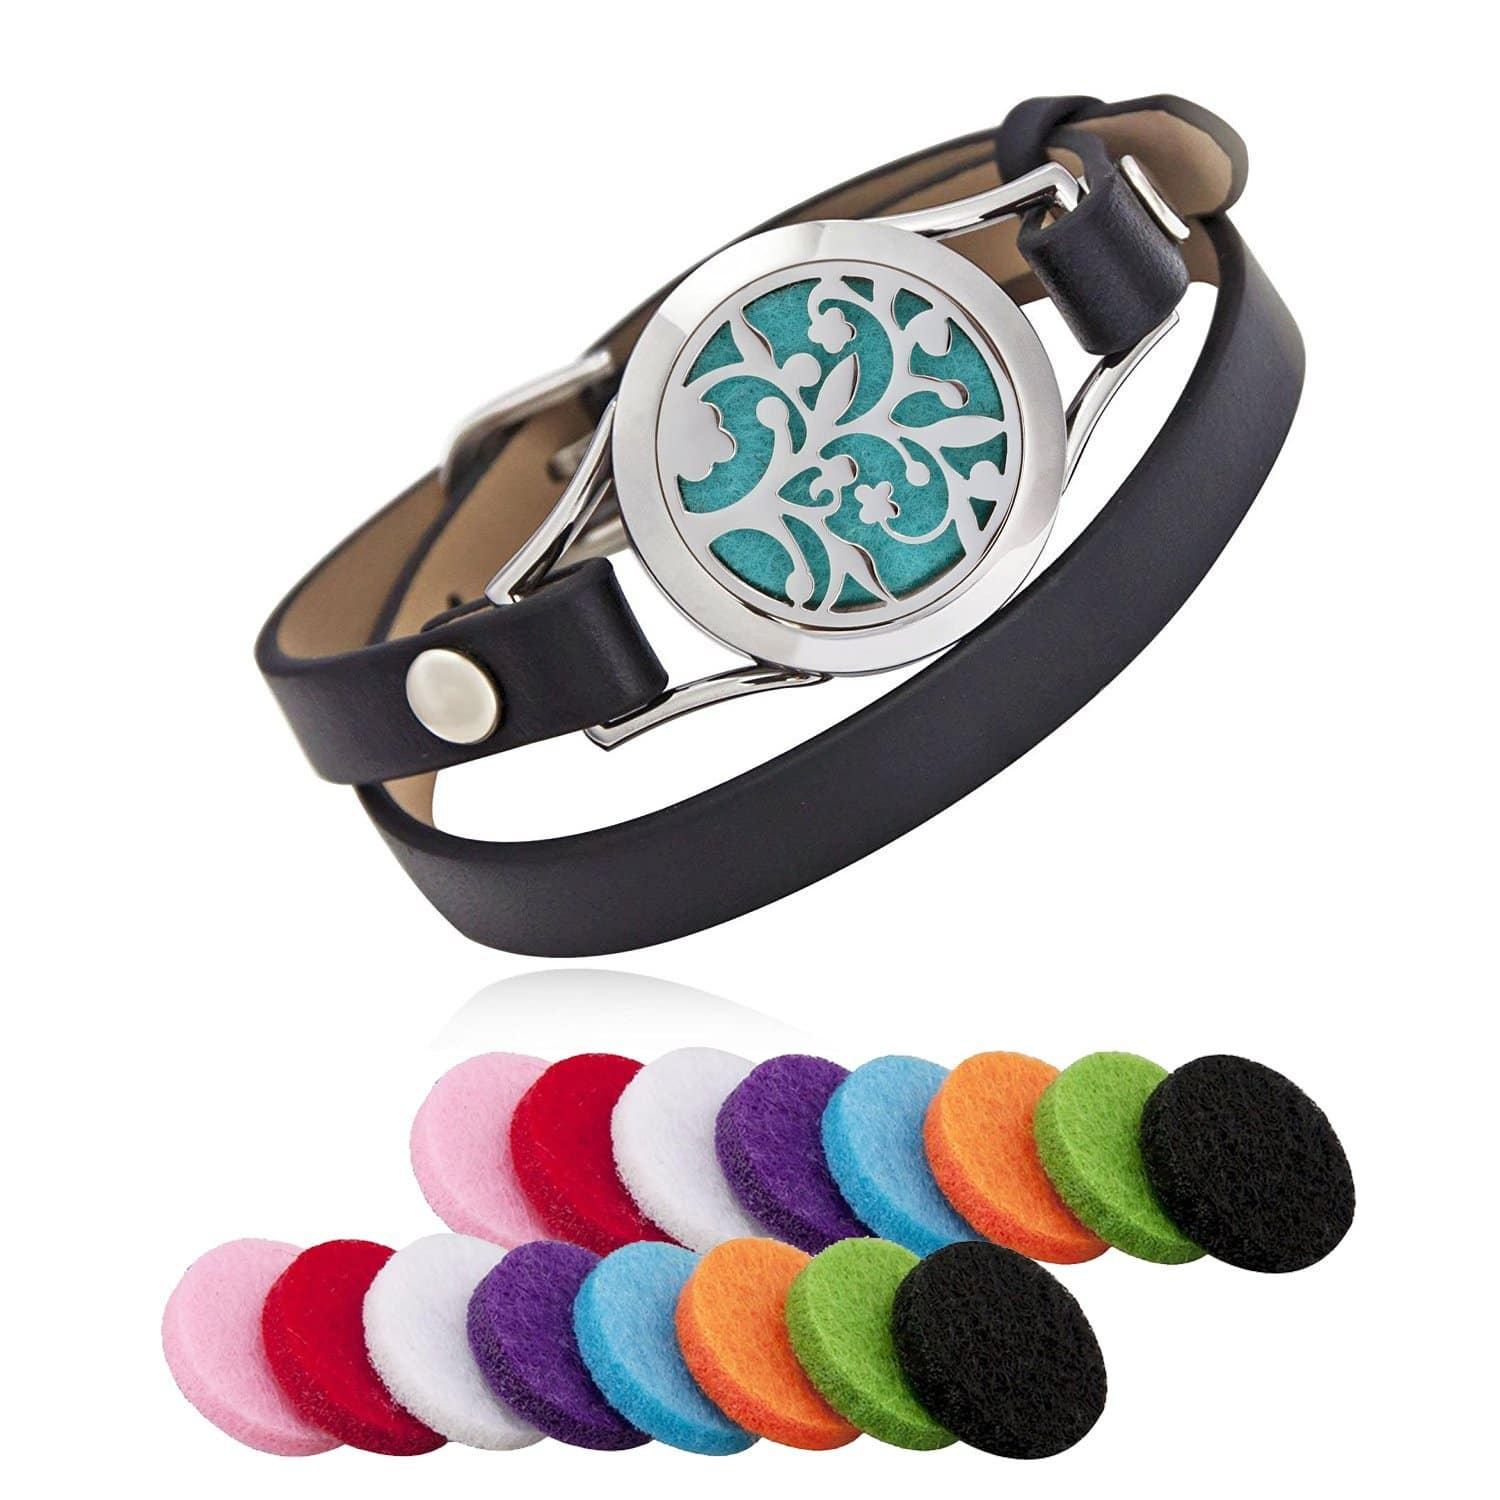 Aroma Essential Oil Diffuser Bracelet with 16 Color Pads for $12.99